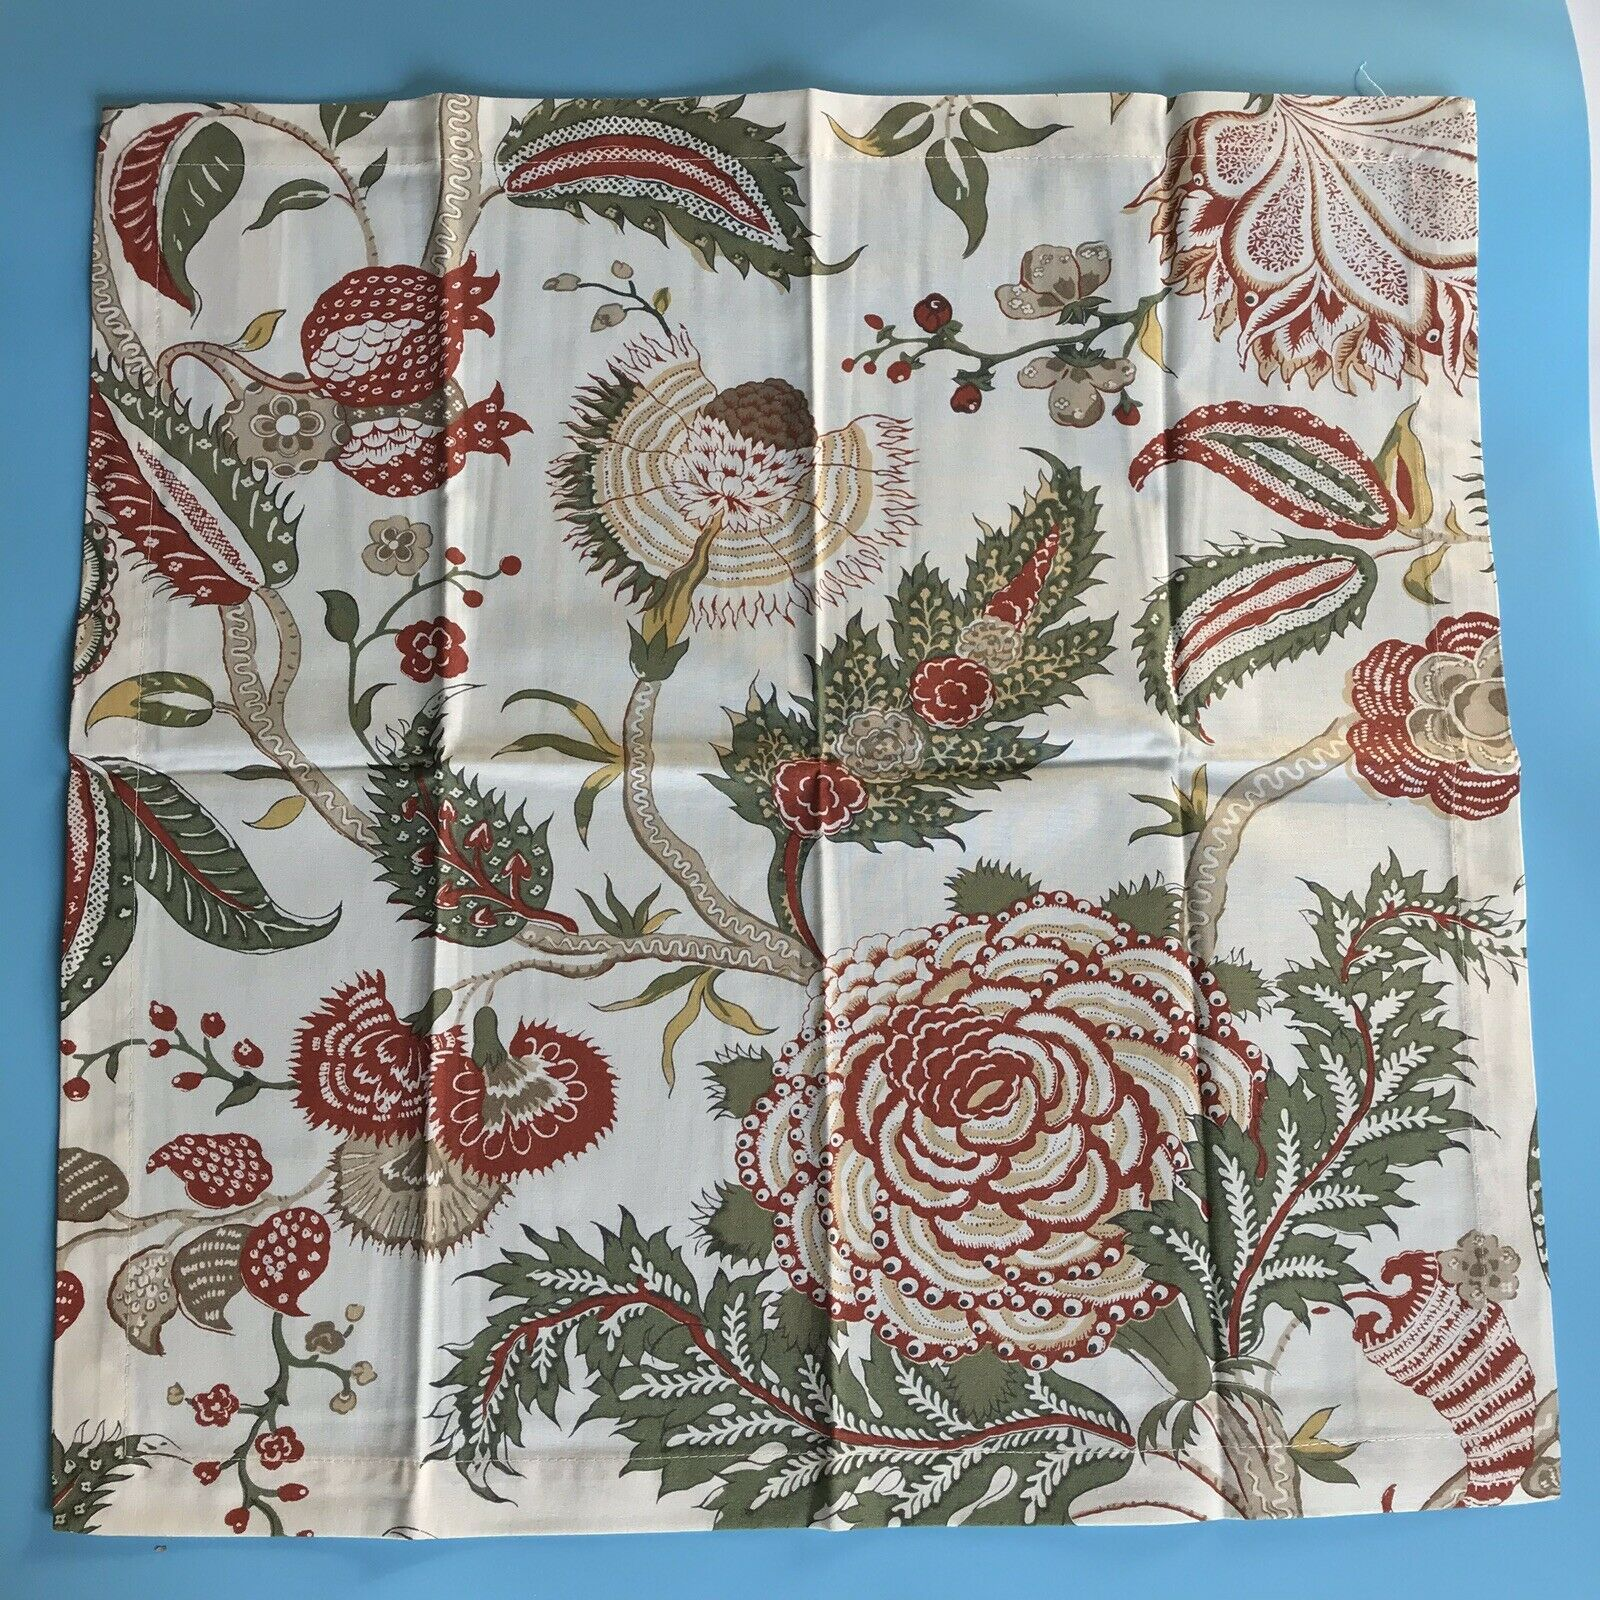 Chinese Silk Ivory  floral Caspari paper lunch napkins 20 pack 33 cm sq 3 ply